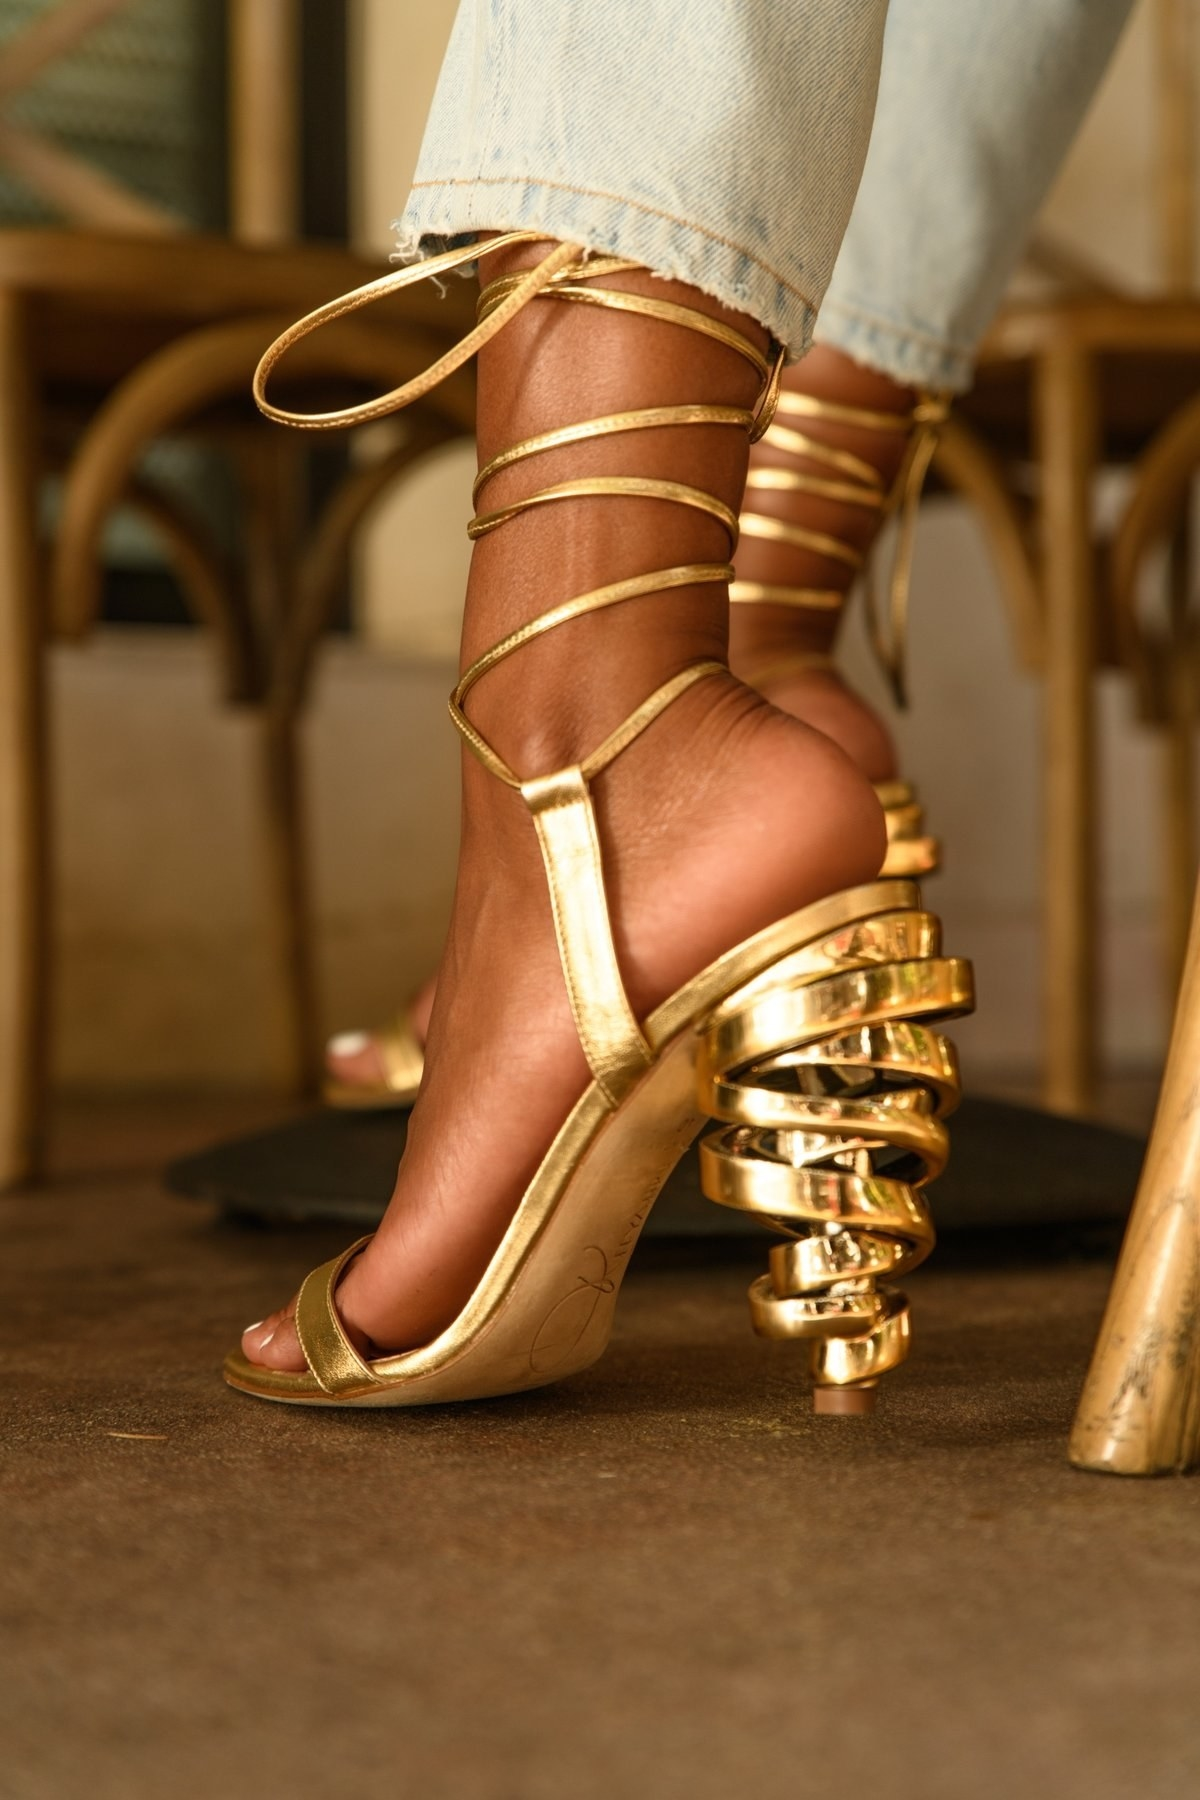 gold heels with a wrap-around detail on the heel with lace-up ankle detailing